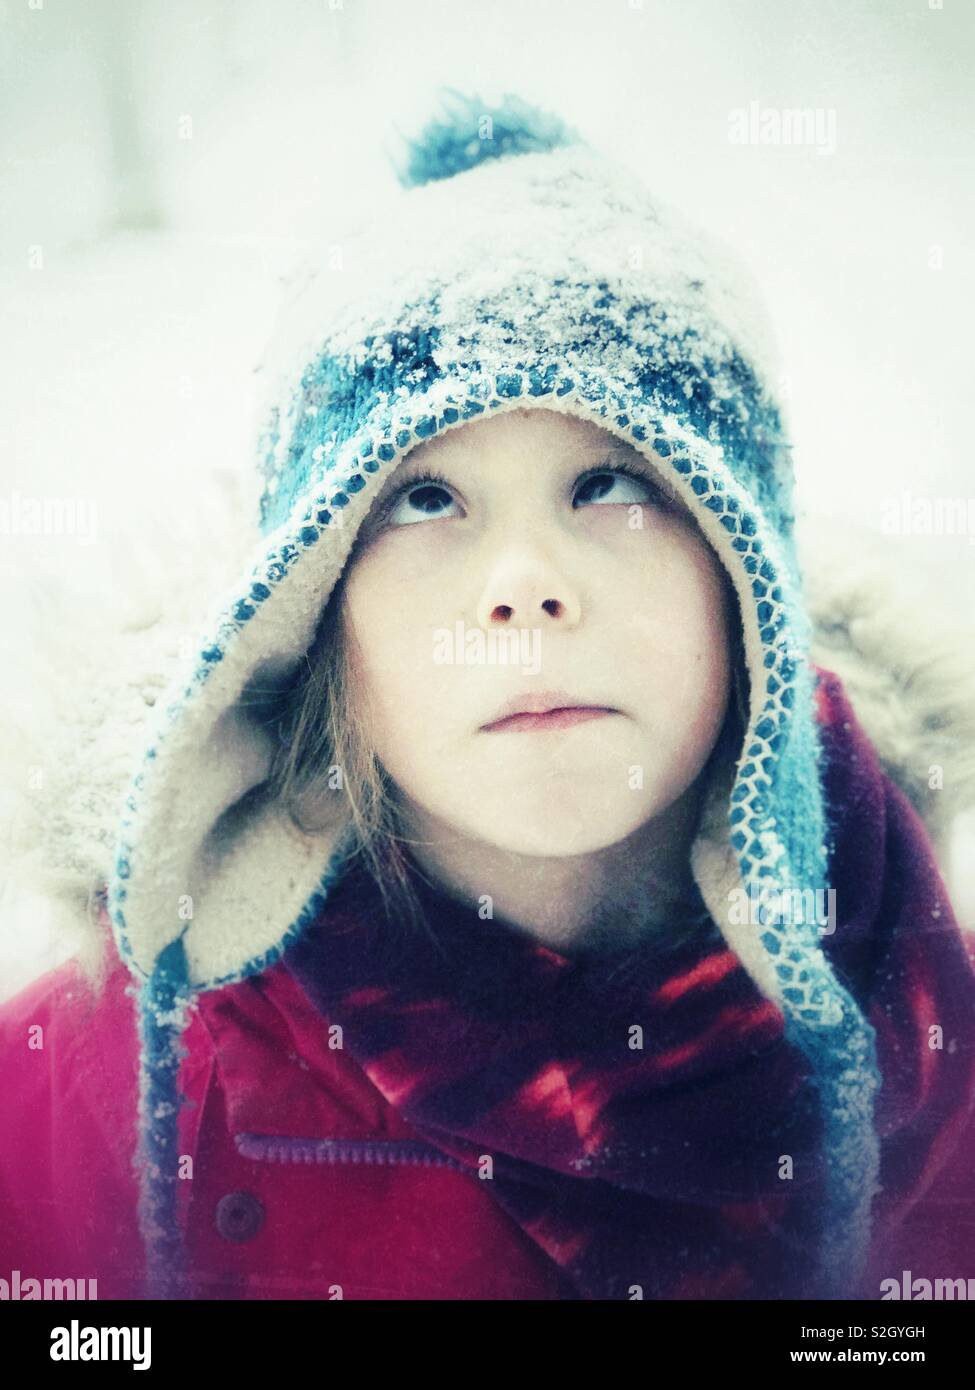 Silly portrait of 6 year old girl crossing eyes looking up at snow on her head - Stock Image